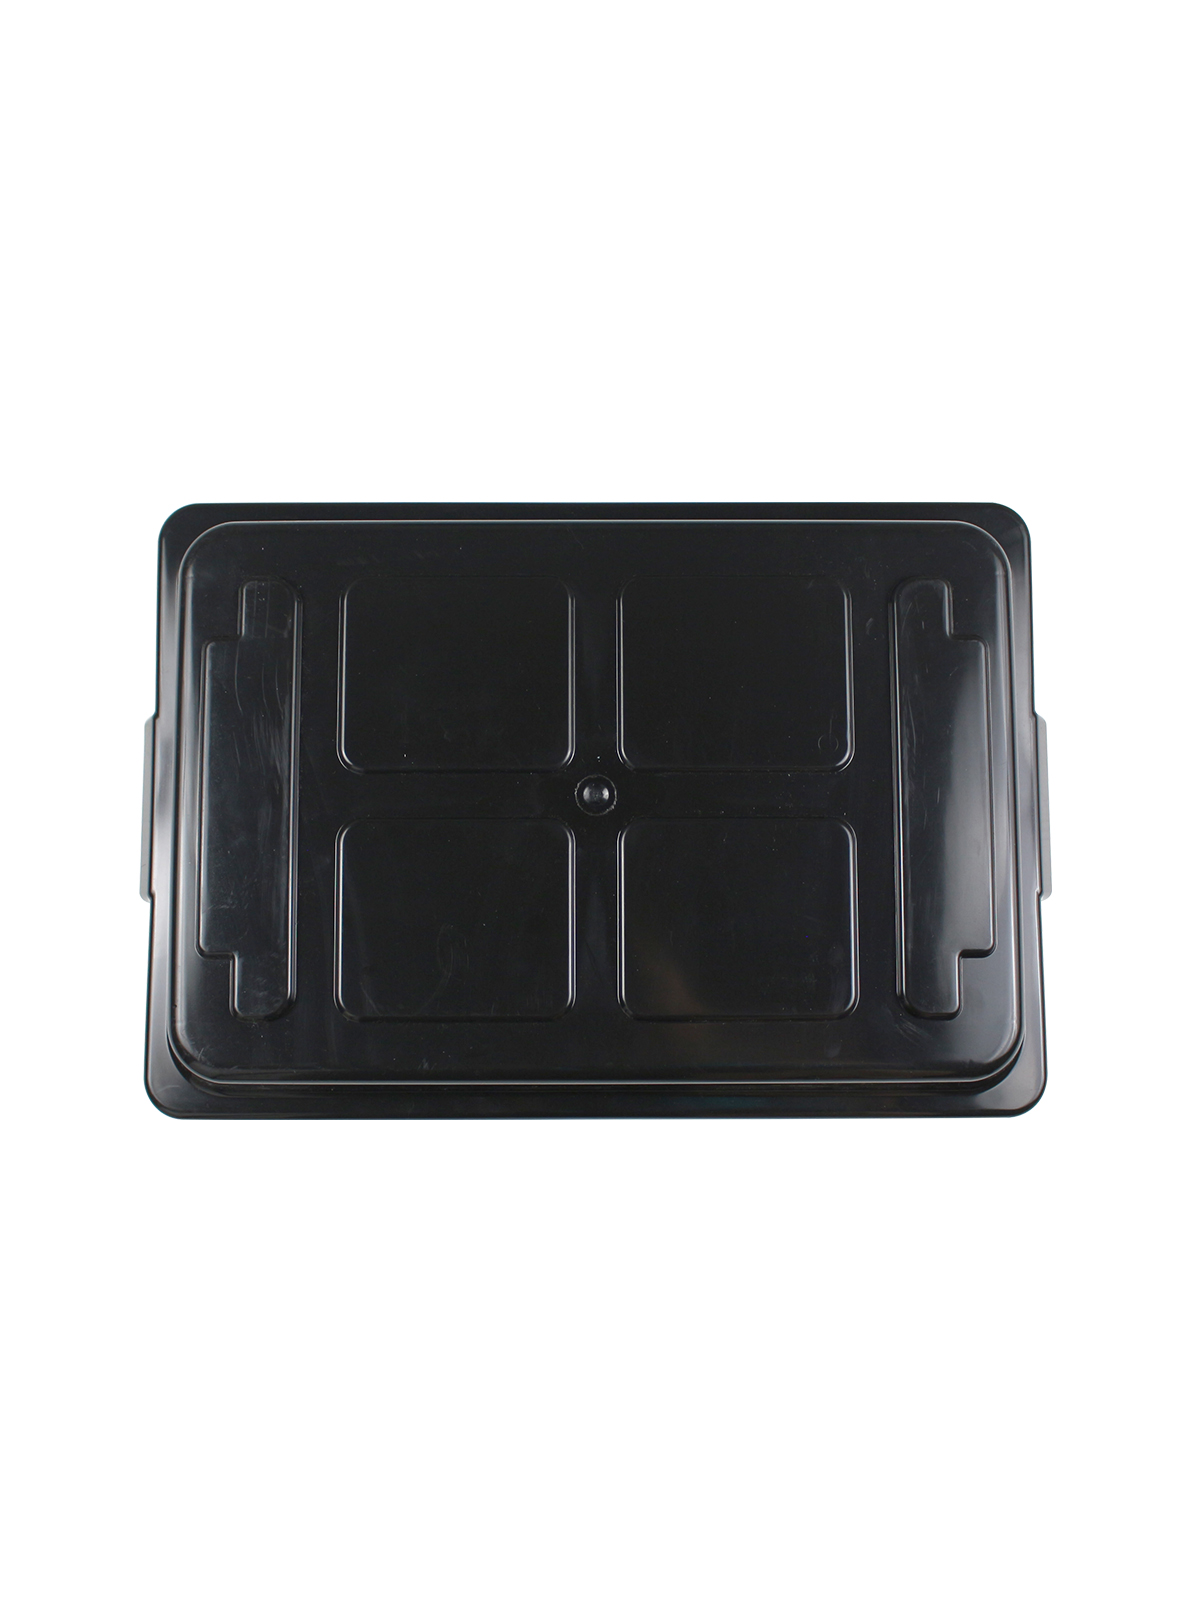 CURBSIDE - Lid - 18 G - Solid - Black